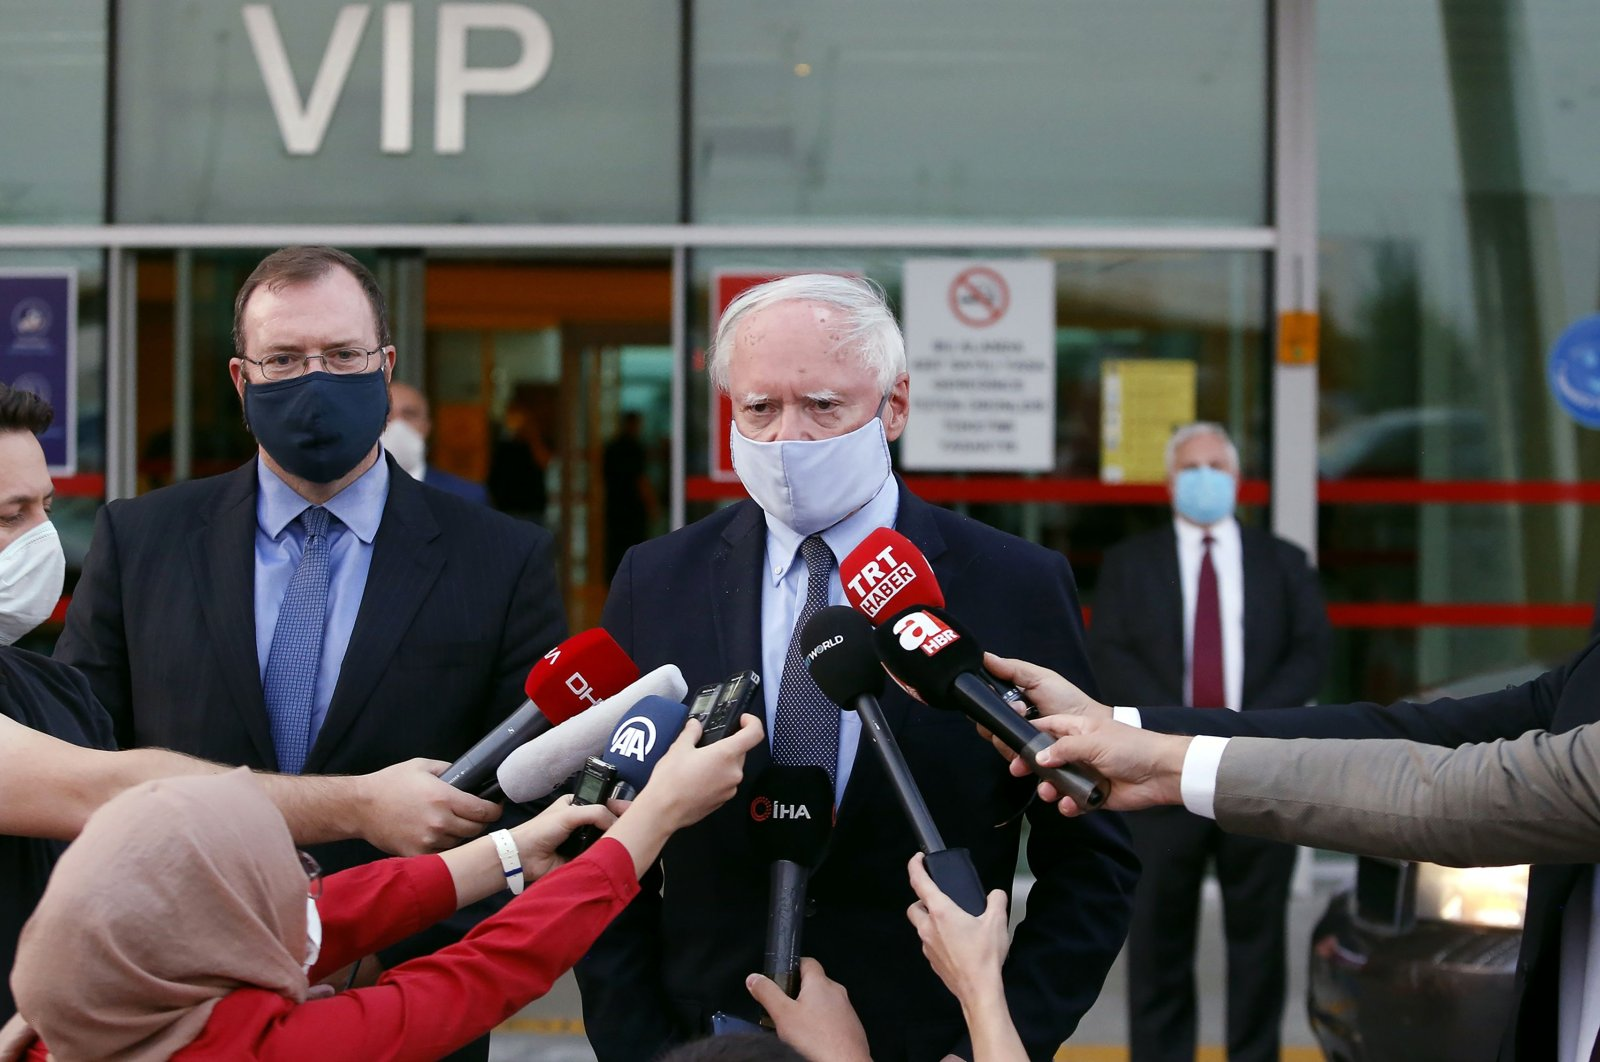 U.S. Special Representative for Syria James Jeffrey (C) speaks to the press after arriving at Esenboğa Airport in Ankara, Aug. 26, 2020. (AFP Photo)